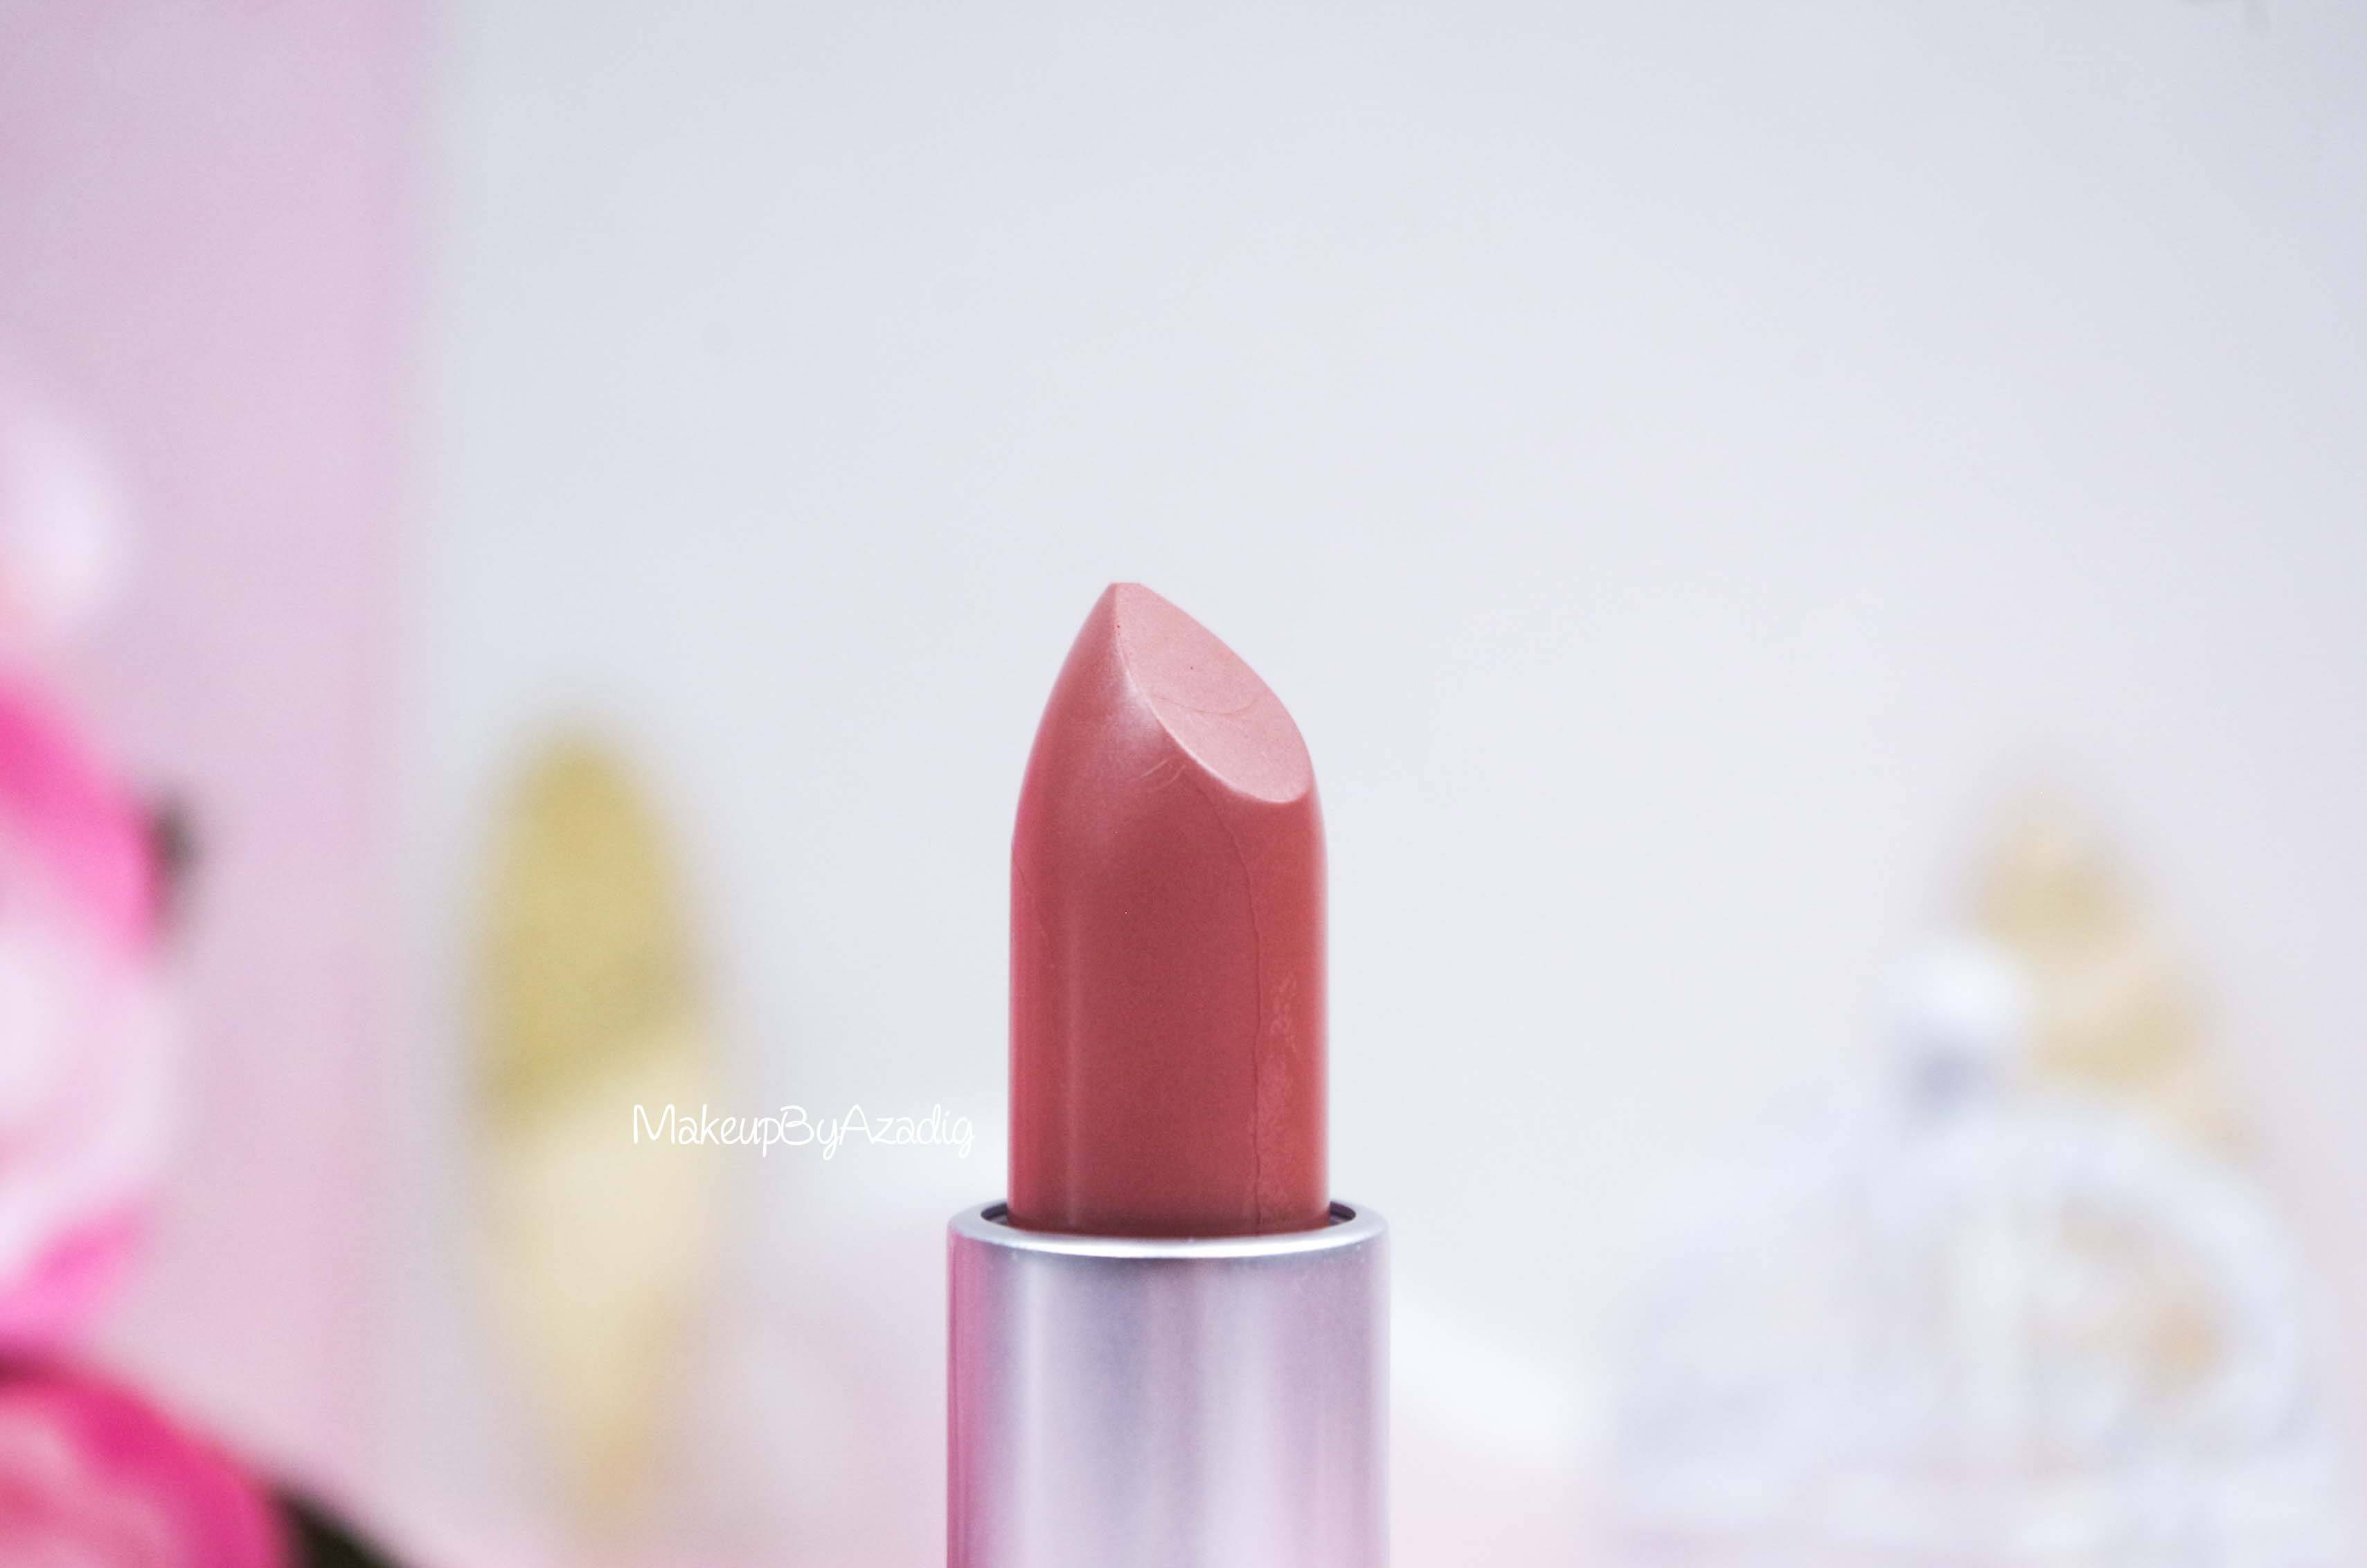 embout-macxmarie-mac-cosmetics-rouge-a-levres-enjoy-phoenix-collaboration-makeupbyazadig-revue-avis-prix-meetup